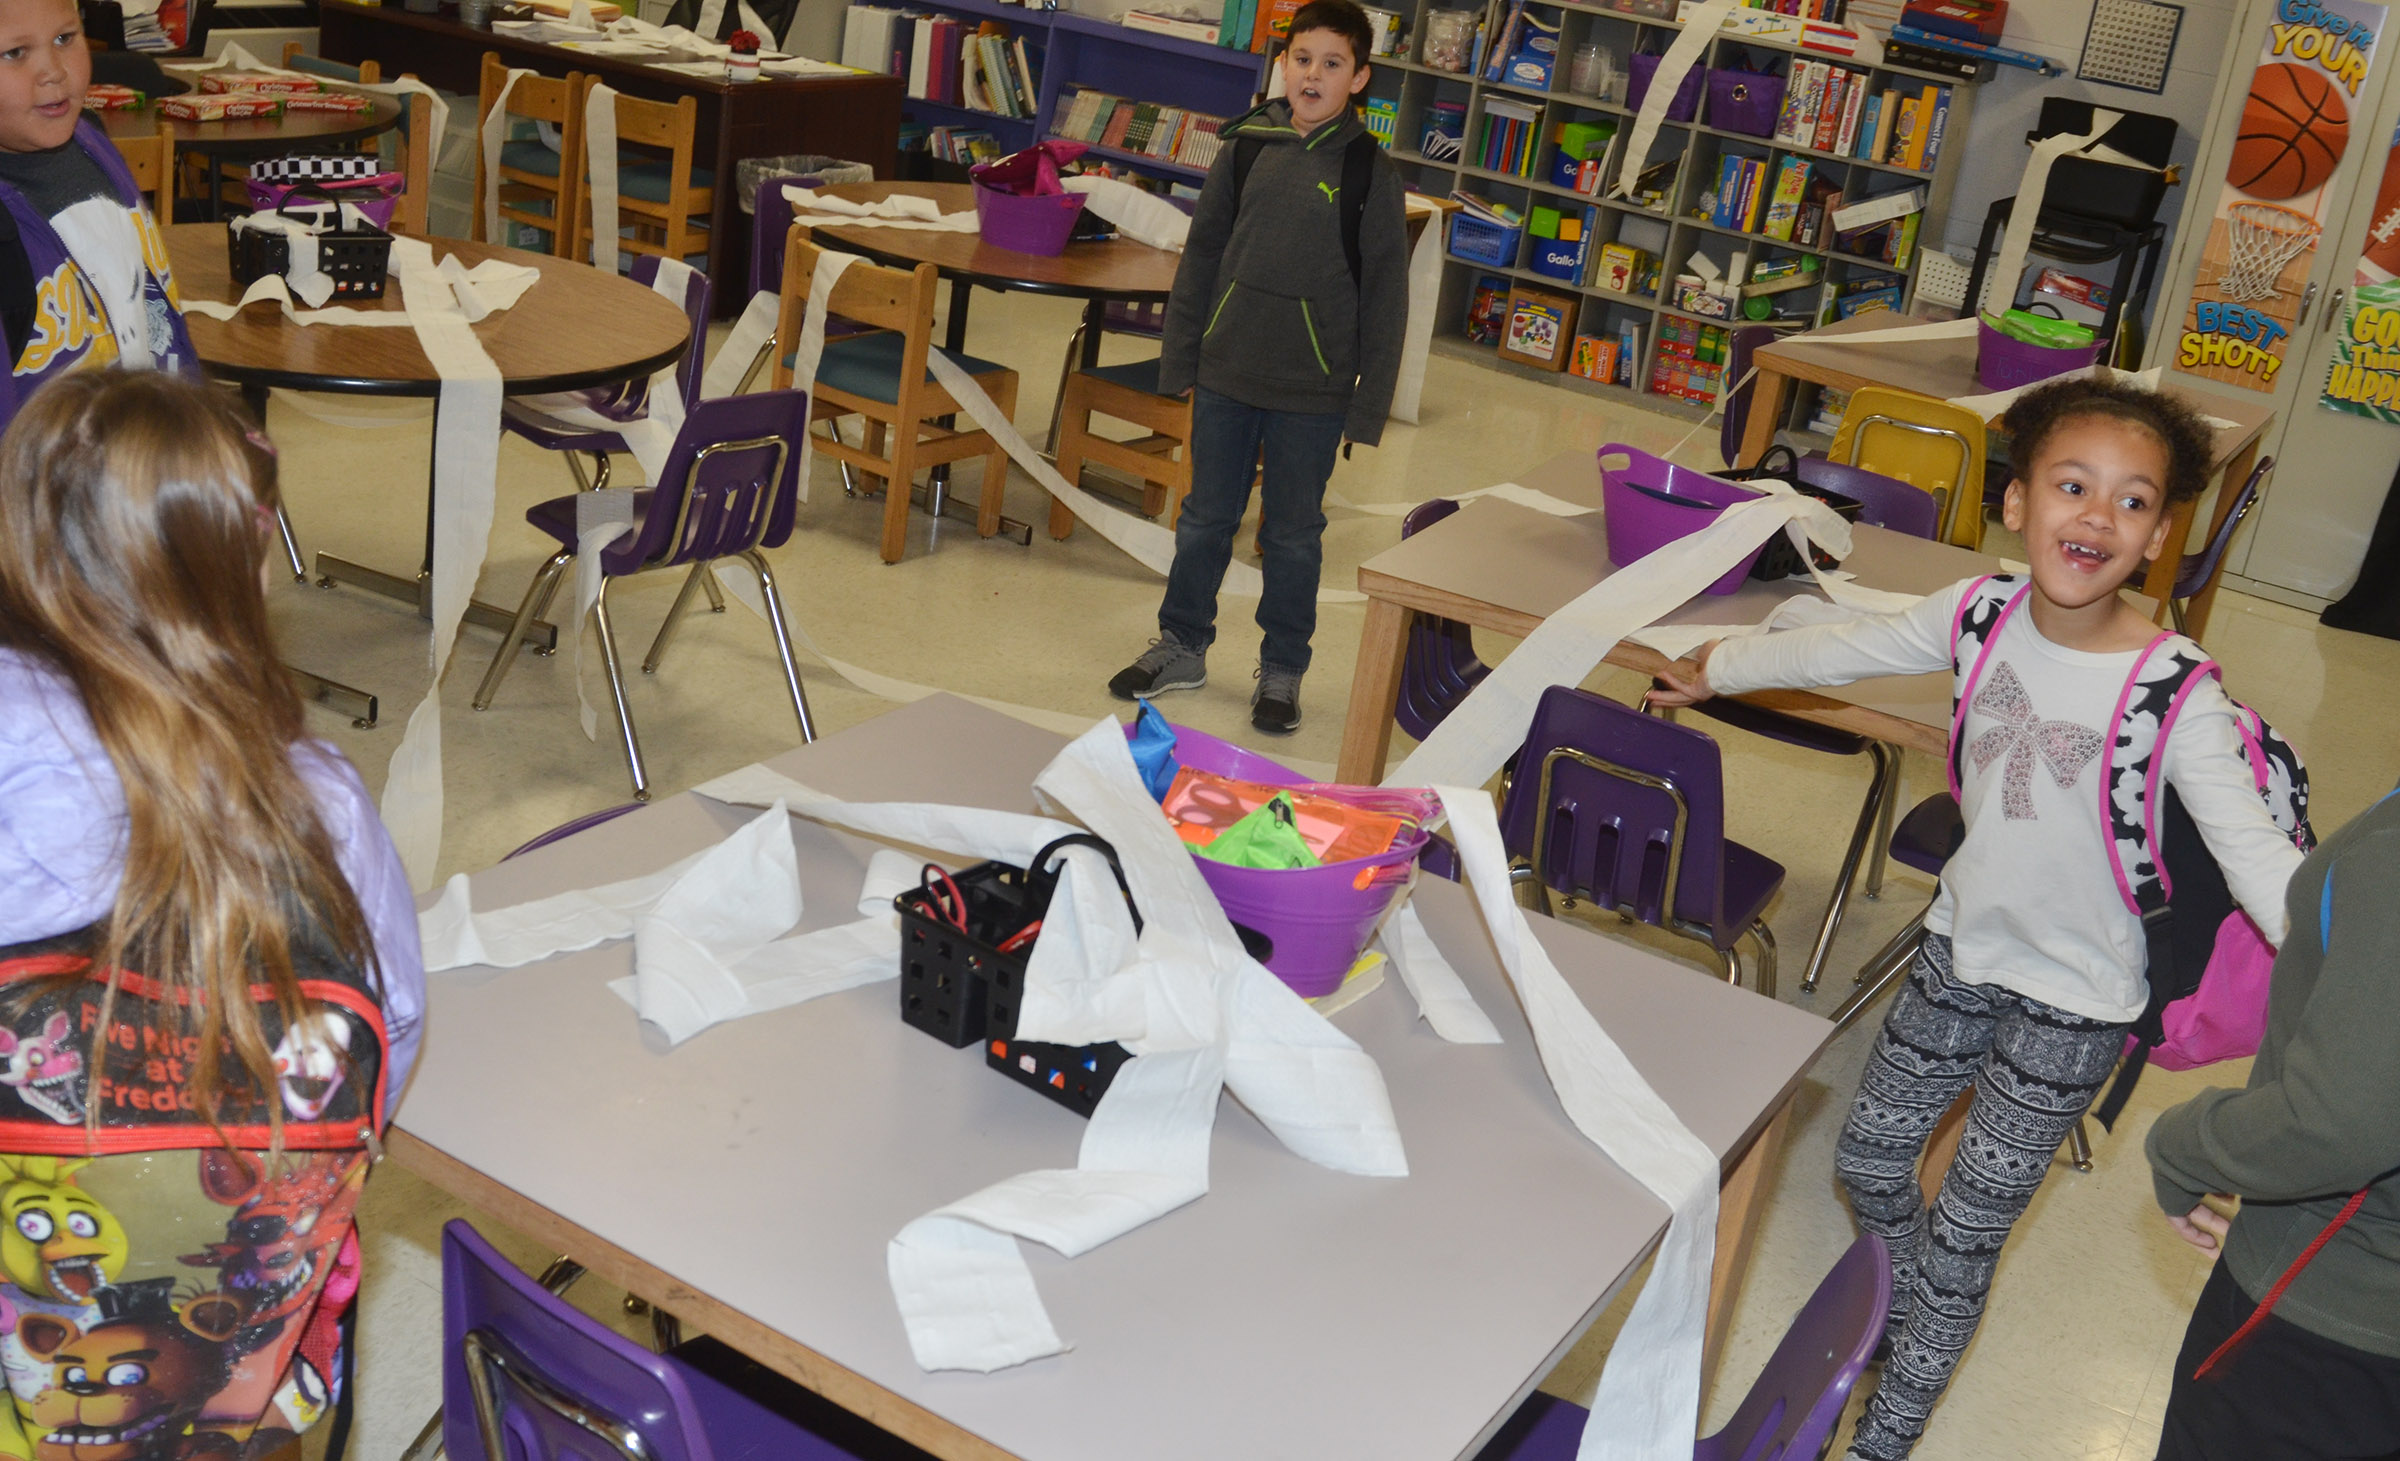 CES third-graders in Patty Haley's class came to school recently and found their elf had thrown toilet paper all over their classroom.